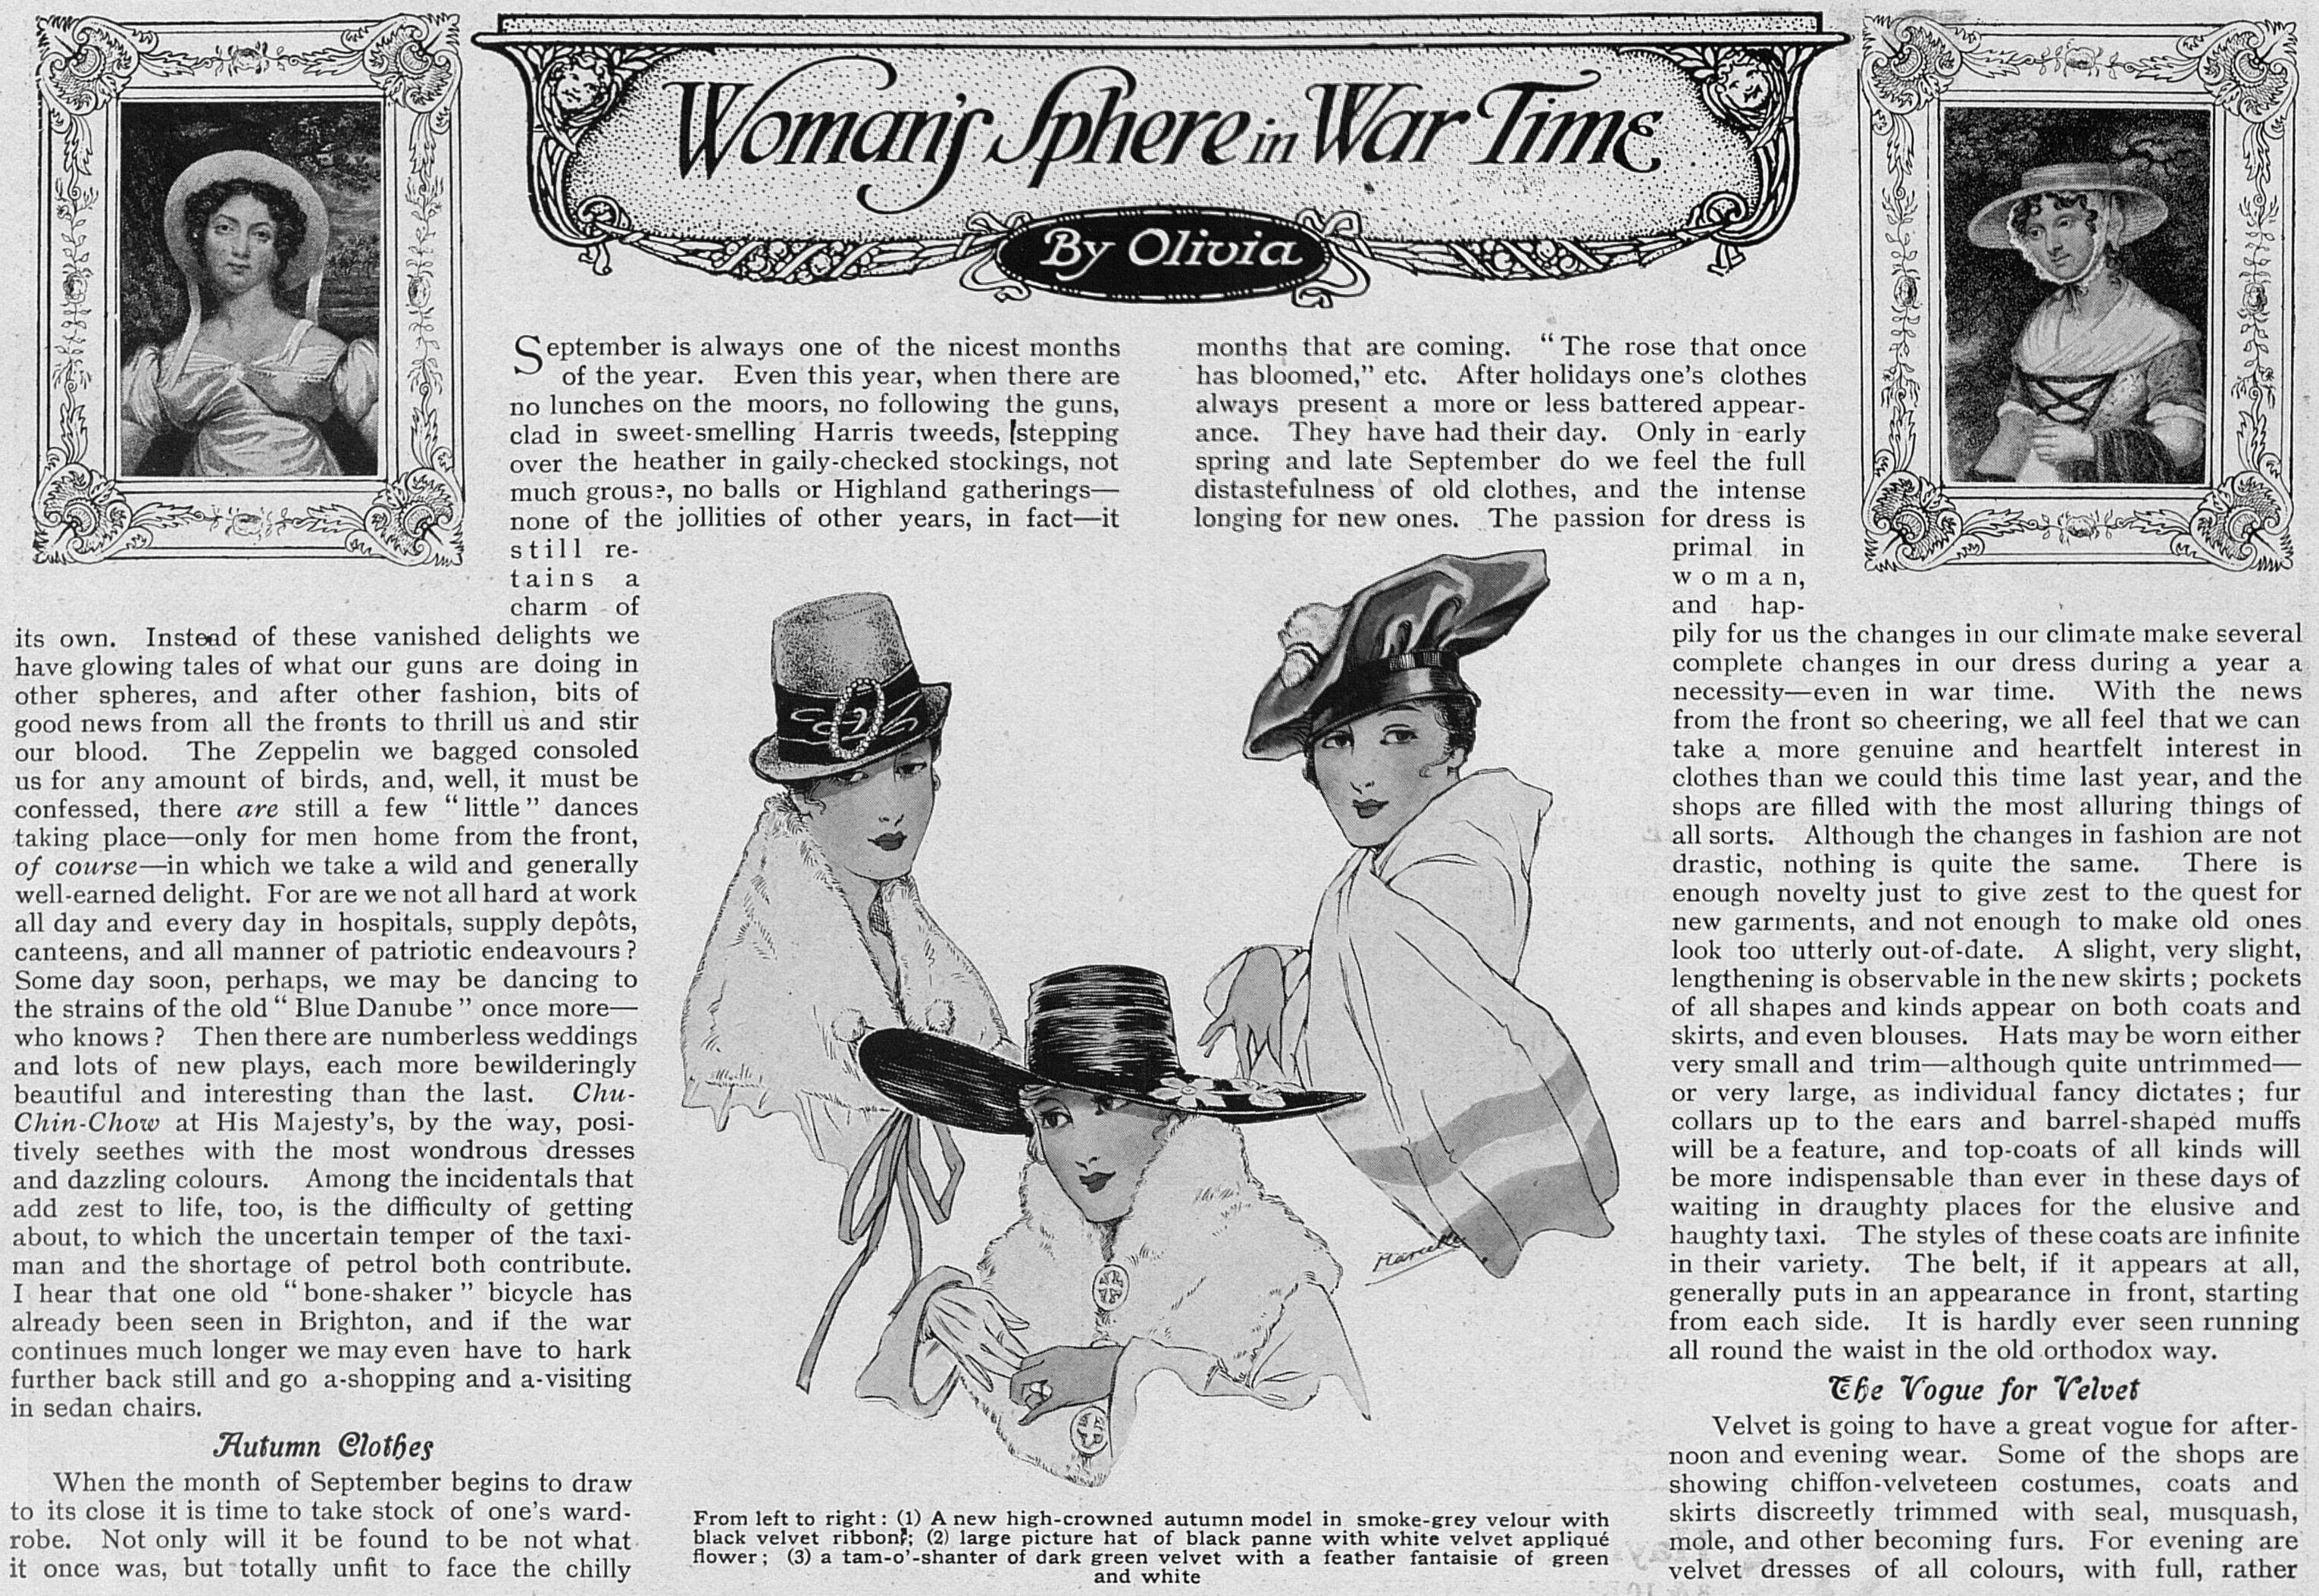 WomansSphereInWarTime_16Sep1916